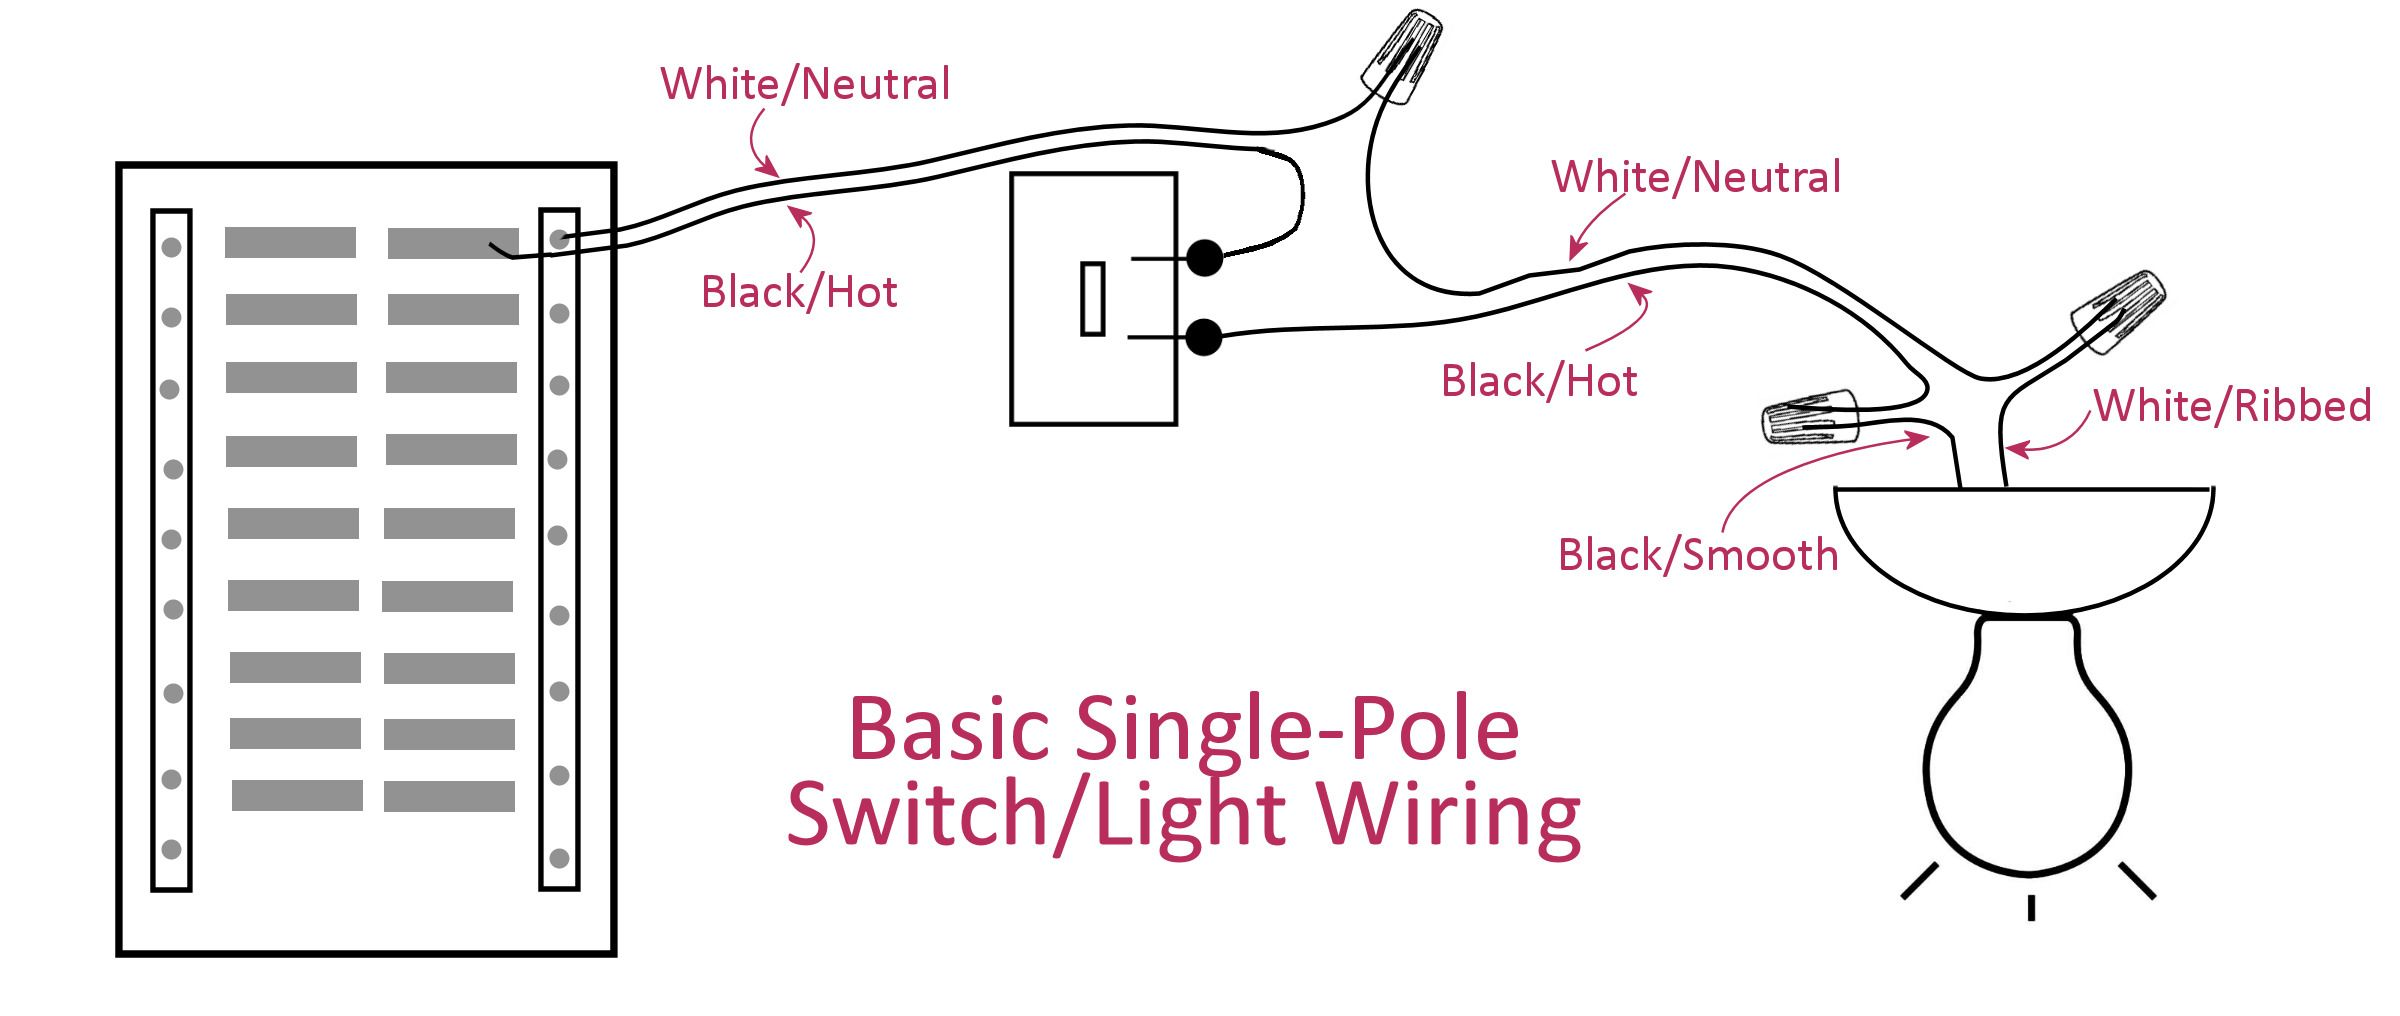 [GJFJ_338]  Electrical Basics - Wiring A Basic Single-Pole Light Switch - Addicted 2  Decorating® | Light switch, Light switch wiring, Basic electrical wiring | Wiring Diagram Single Pole Switch To Light Fixture |  | Pinterest